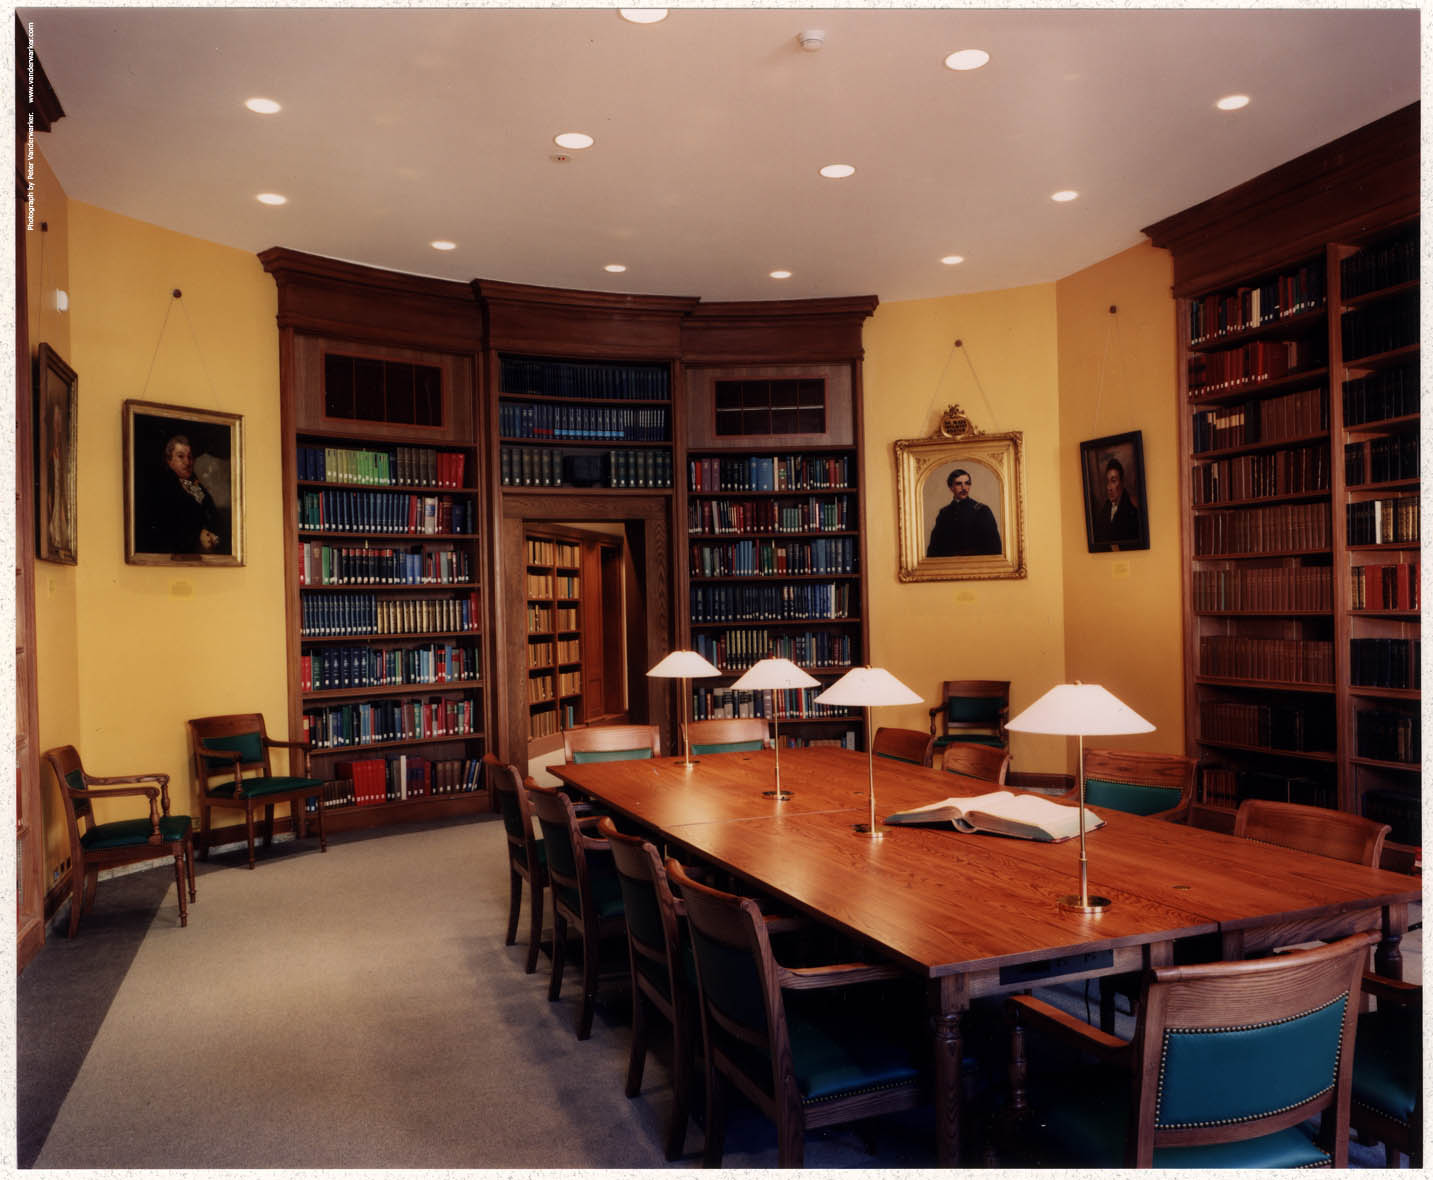 Seminar meetings will be held Tuesdays and Thursdays in the intimate space of the MHS Seminar Room.